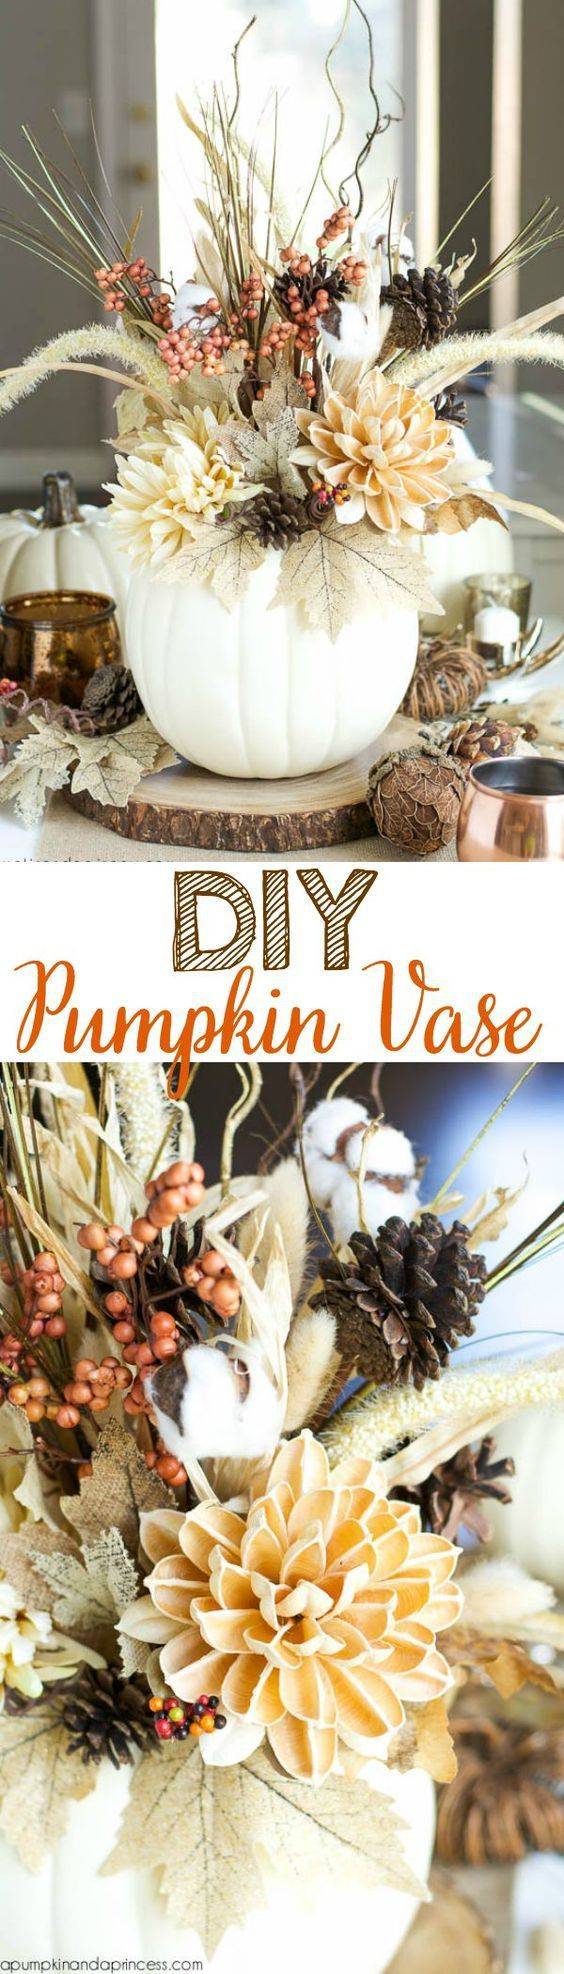 Best Genius DIYs Autumn Images On Pinterest DIY Fall - Delicate fall decor ideas for this autumn